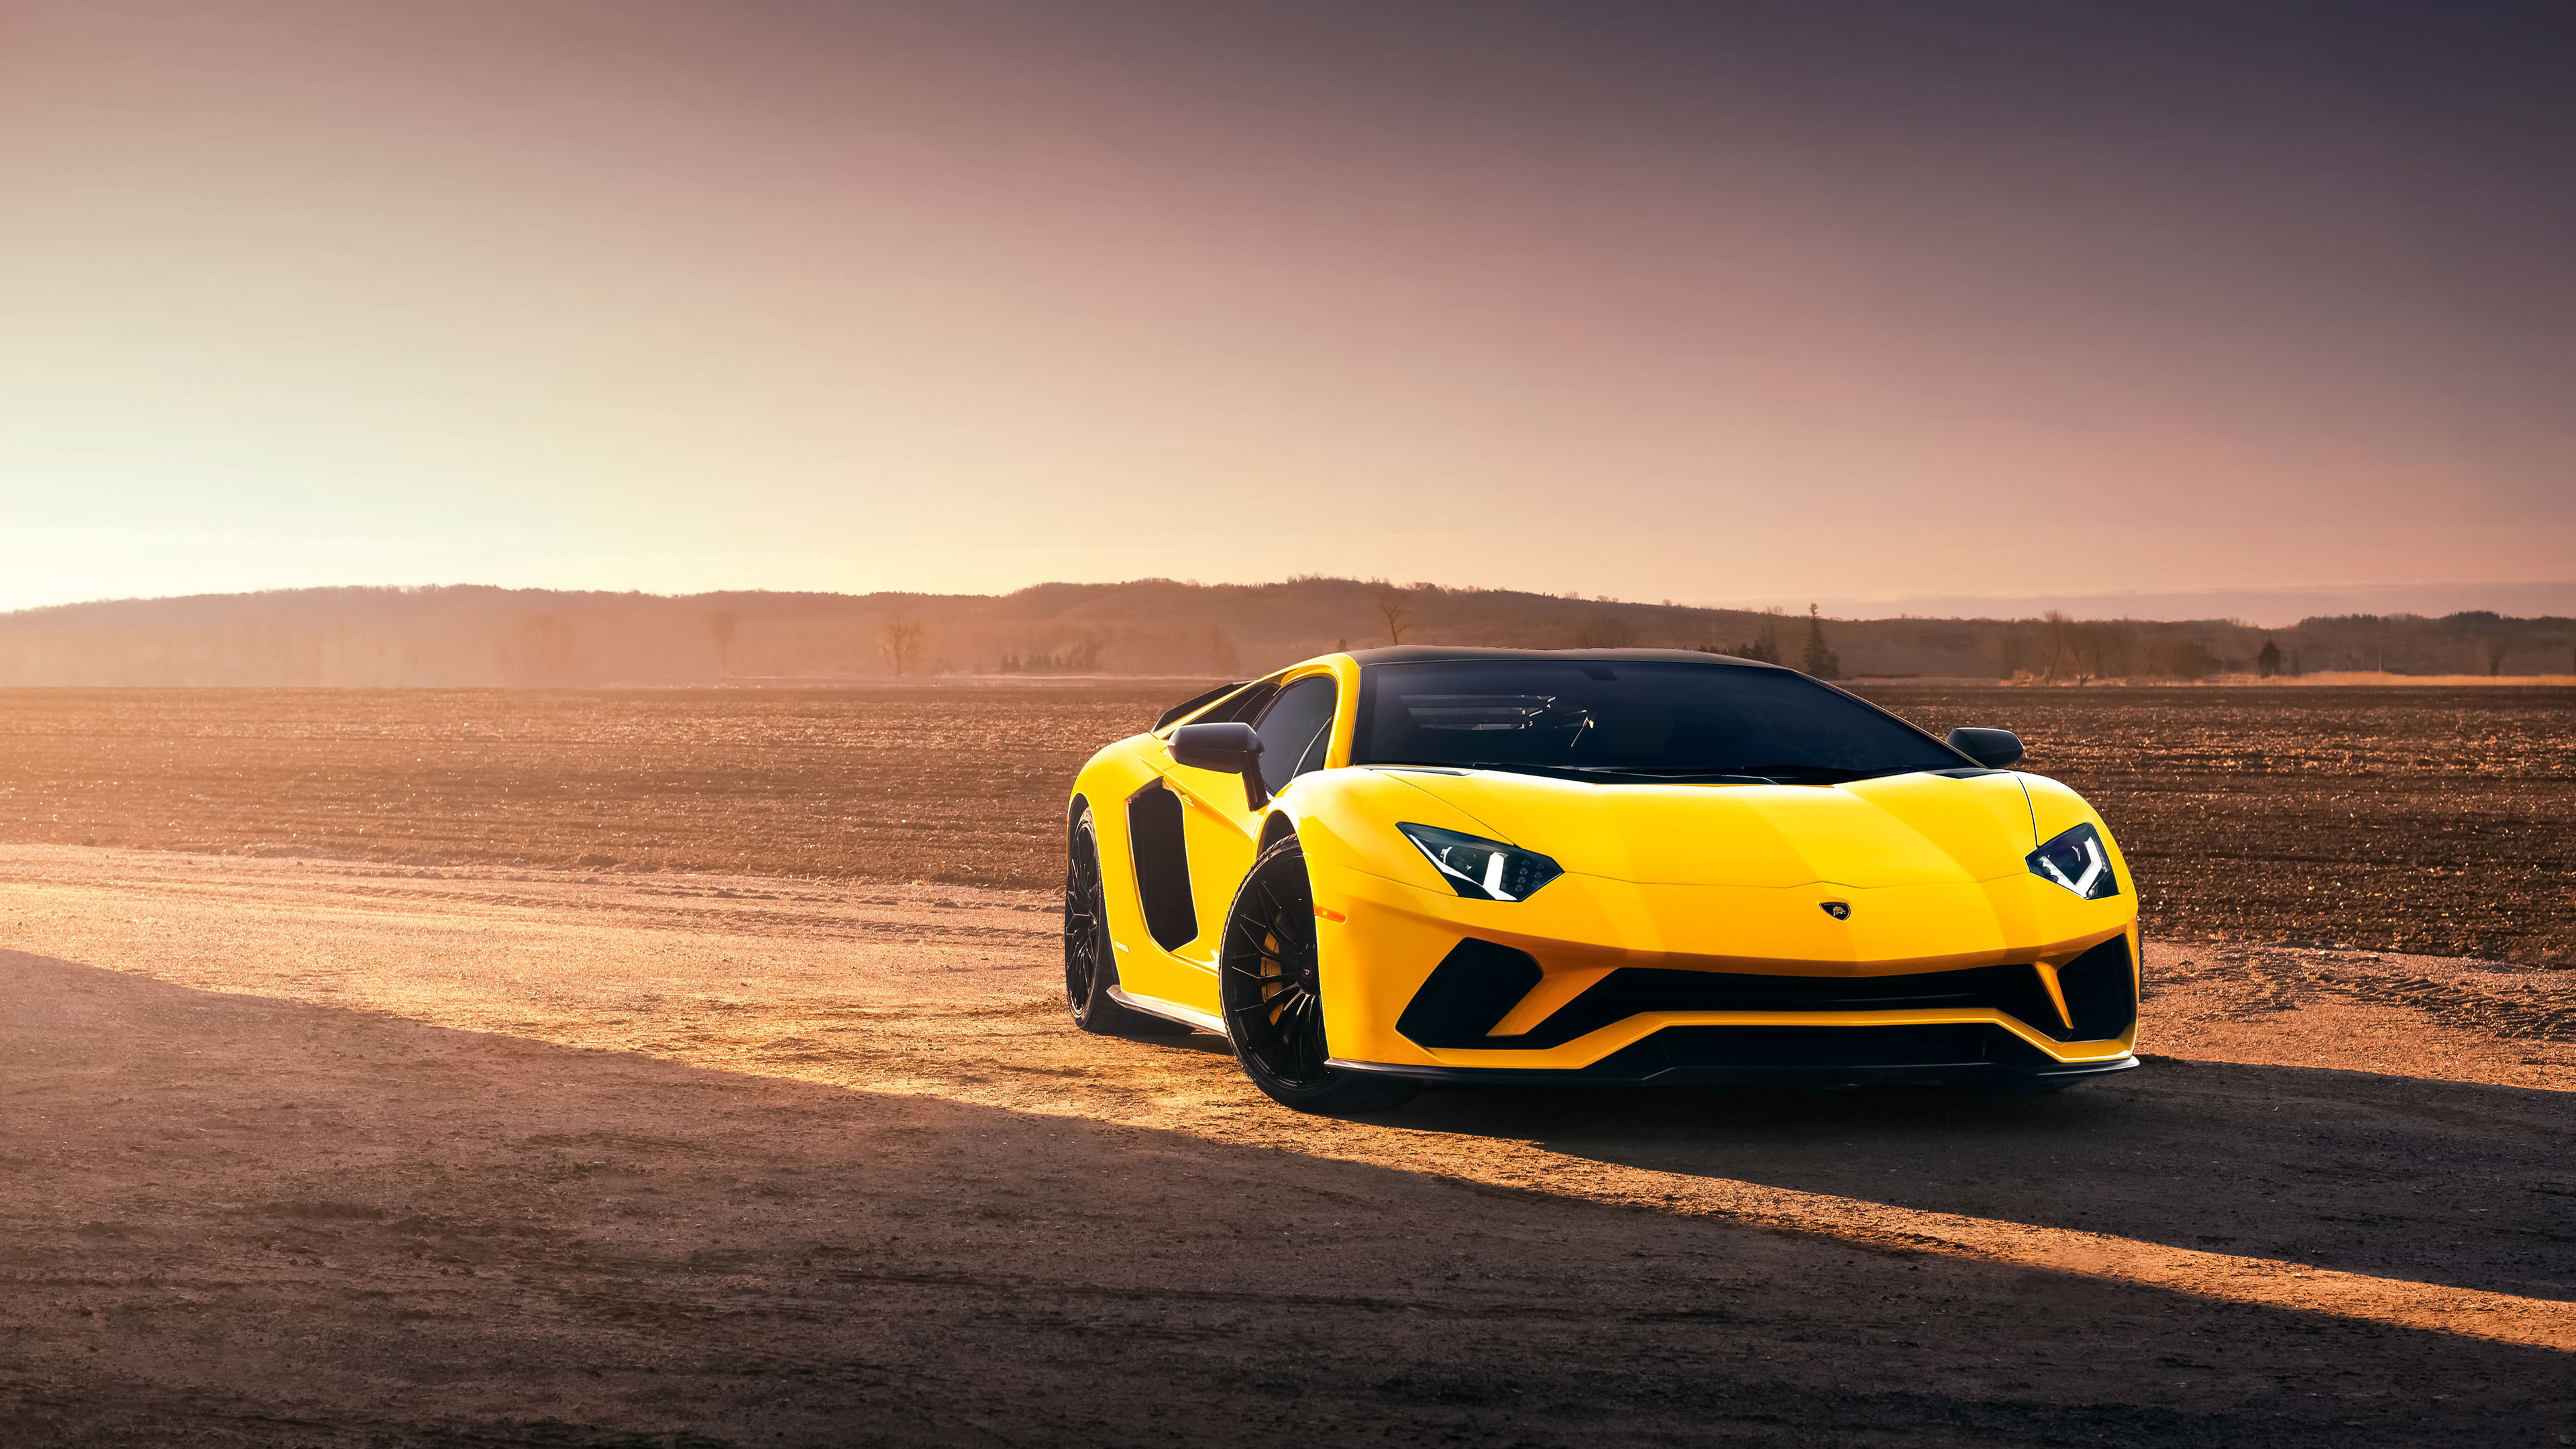 Lamborghini Aventador S 4k Wallpapers Hd Wallpapers